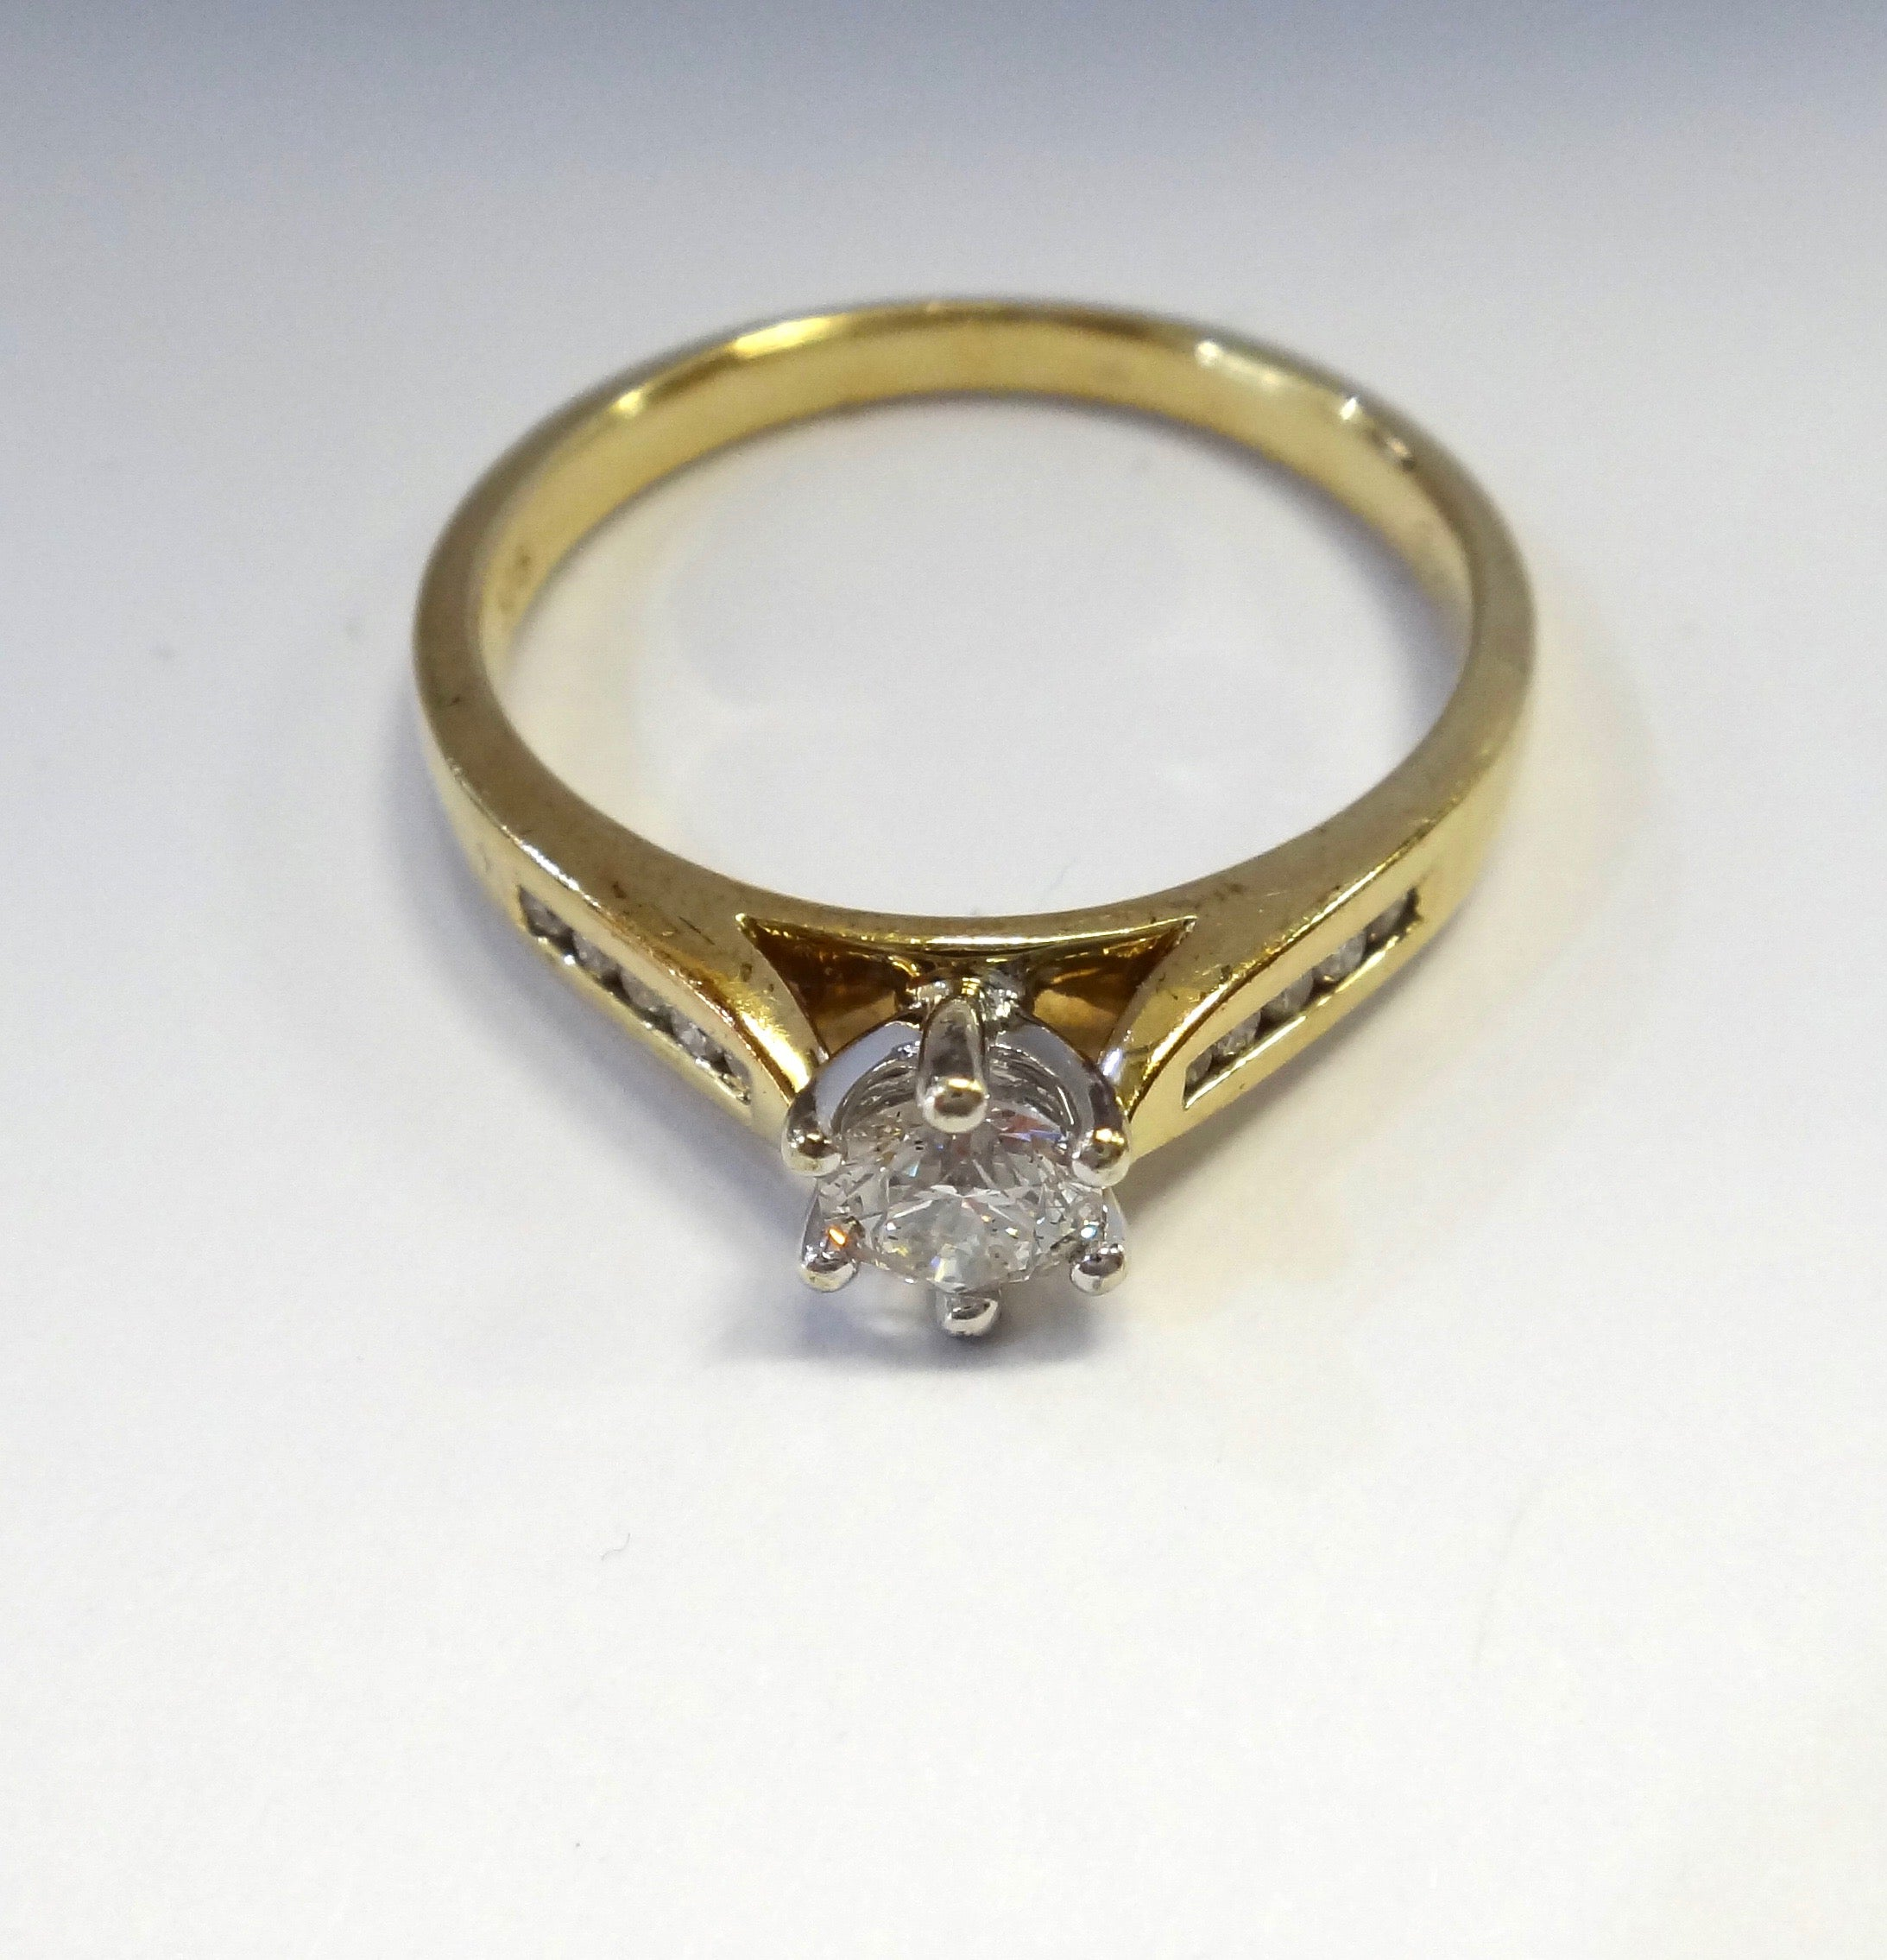 9CT Yellow Gold & 1/4 Carat Diamond Solitaire Ring